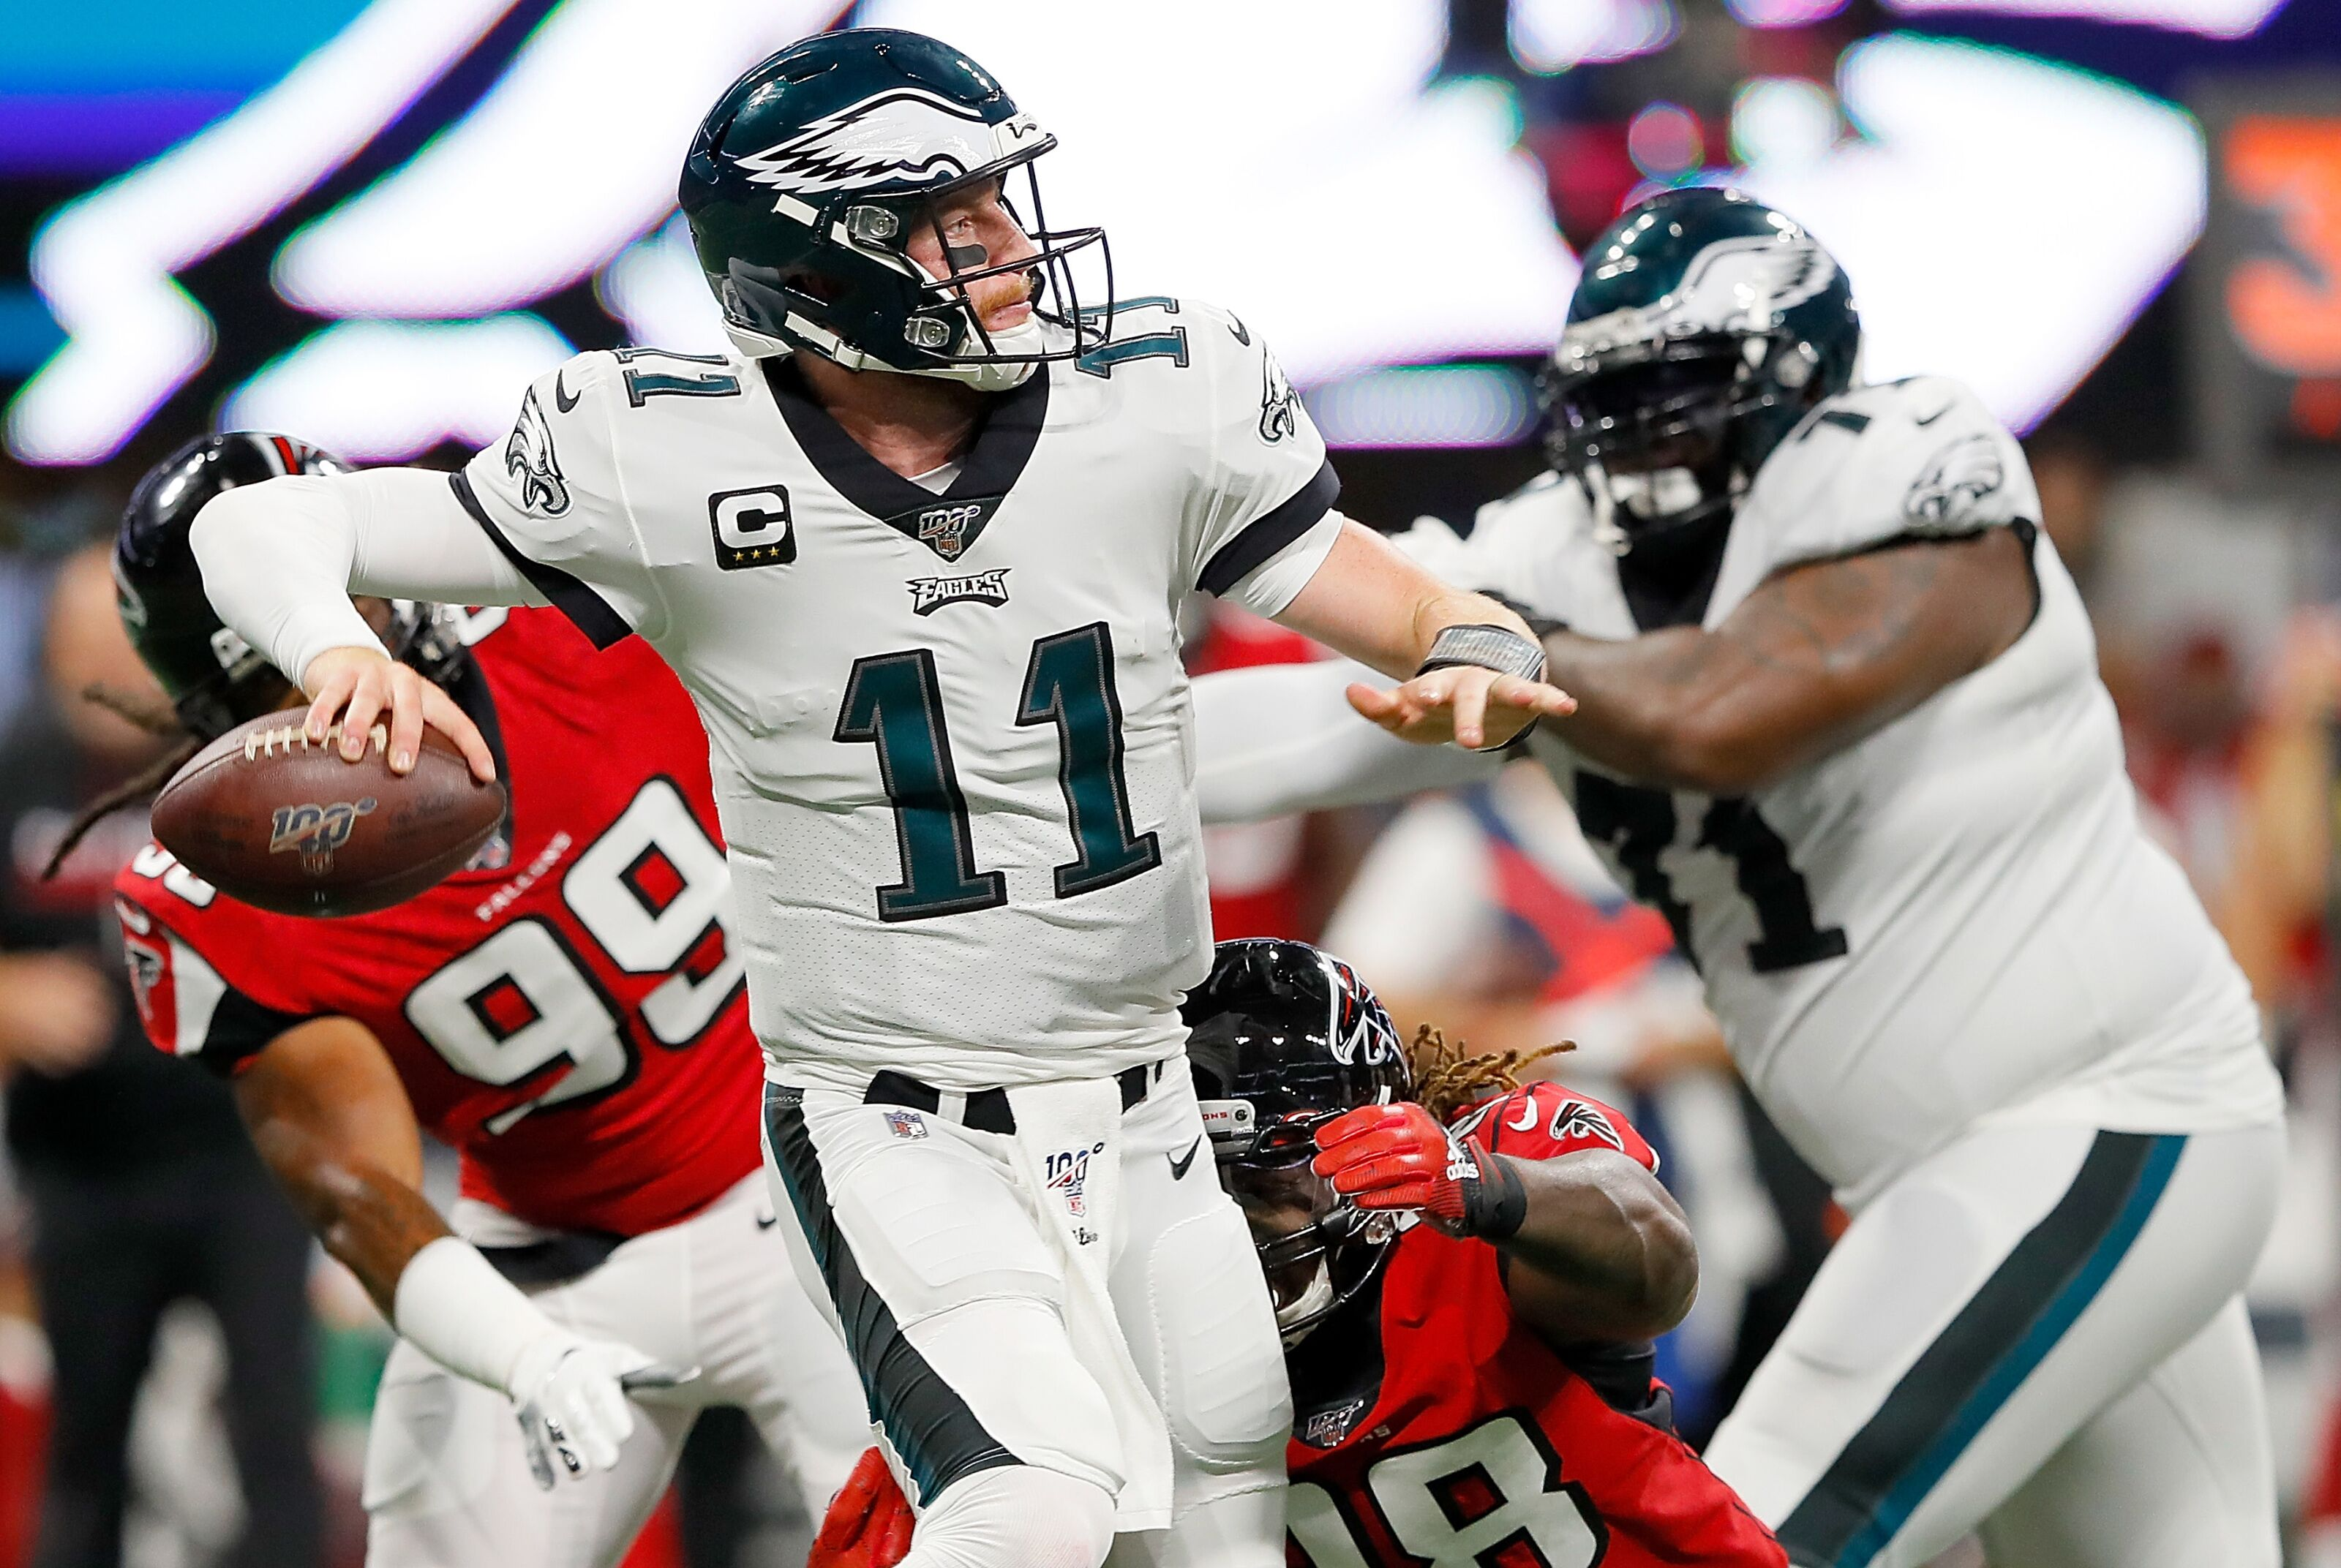 Carson Wentz injured for Eagles, Josh McCown comes in